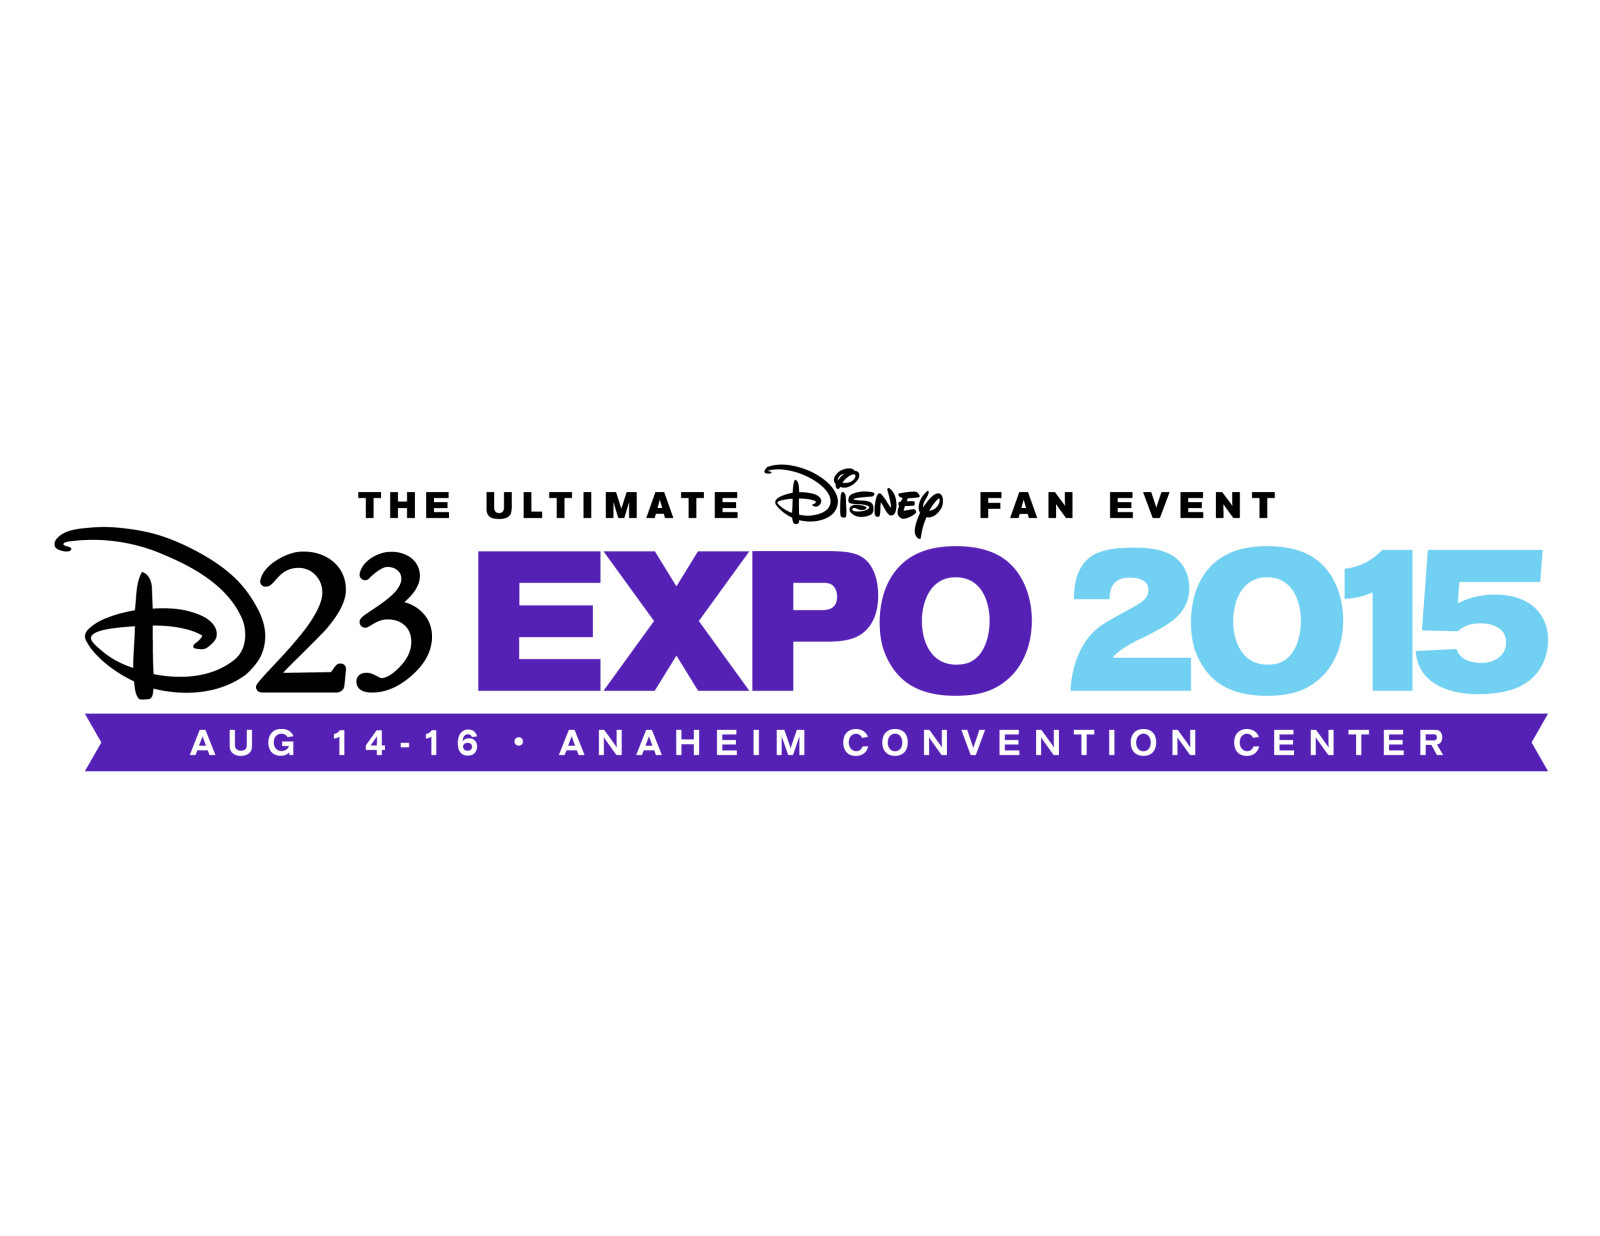 Disney D23 Expo 2015 Logo